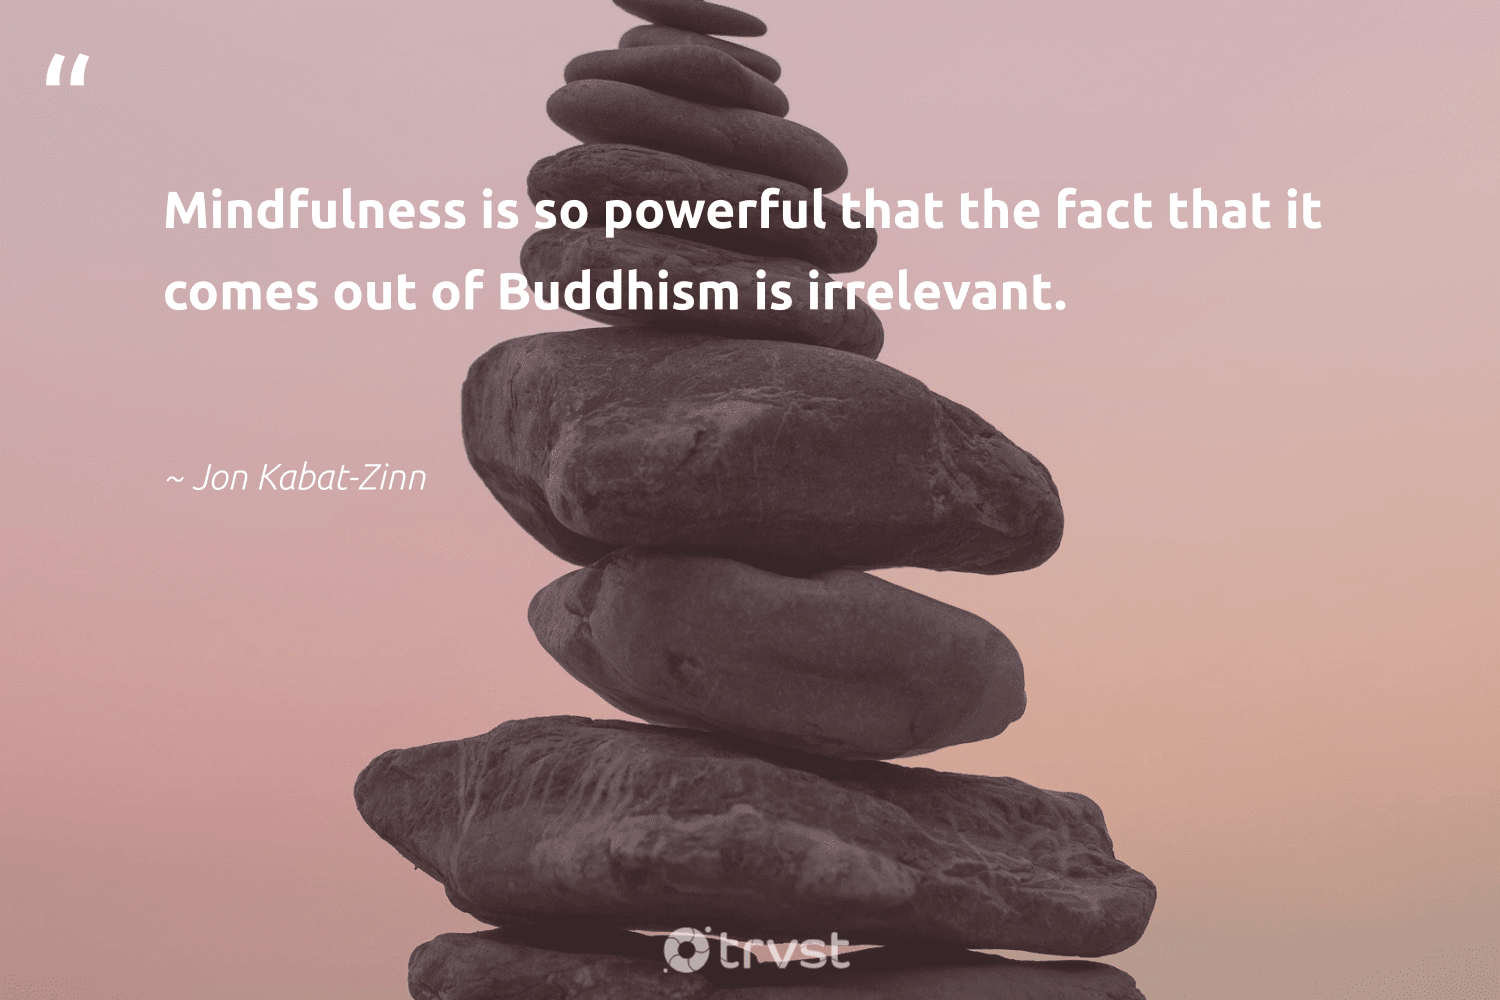 """""""Mindfulness is so powerful that the fact that it comes out of Buddhism is irrelevant.""""  - Jon Kabat-Zinn #trvst #quotes #mindfulness #goals #meditation #togetherwecan #dogood #motivation #happiness #nevergiveup #socialchange #meditate"""